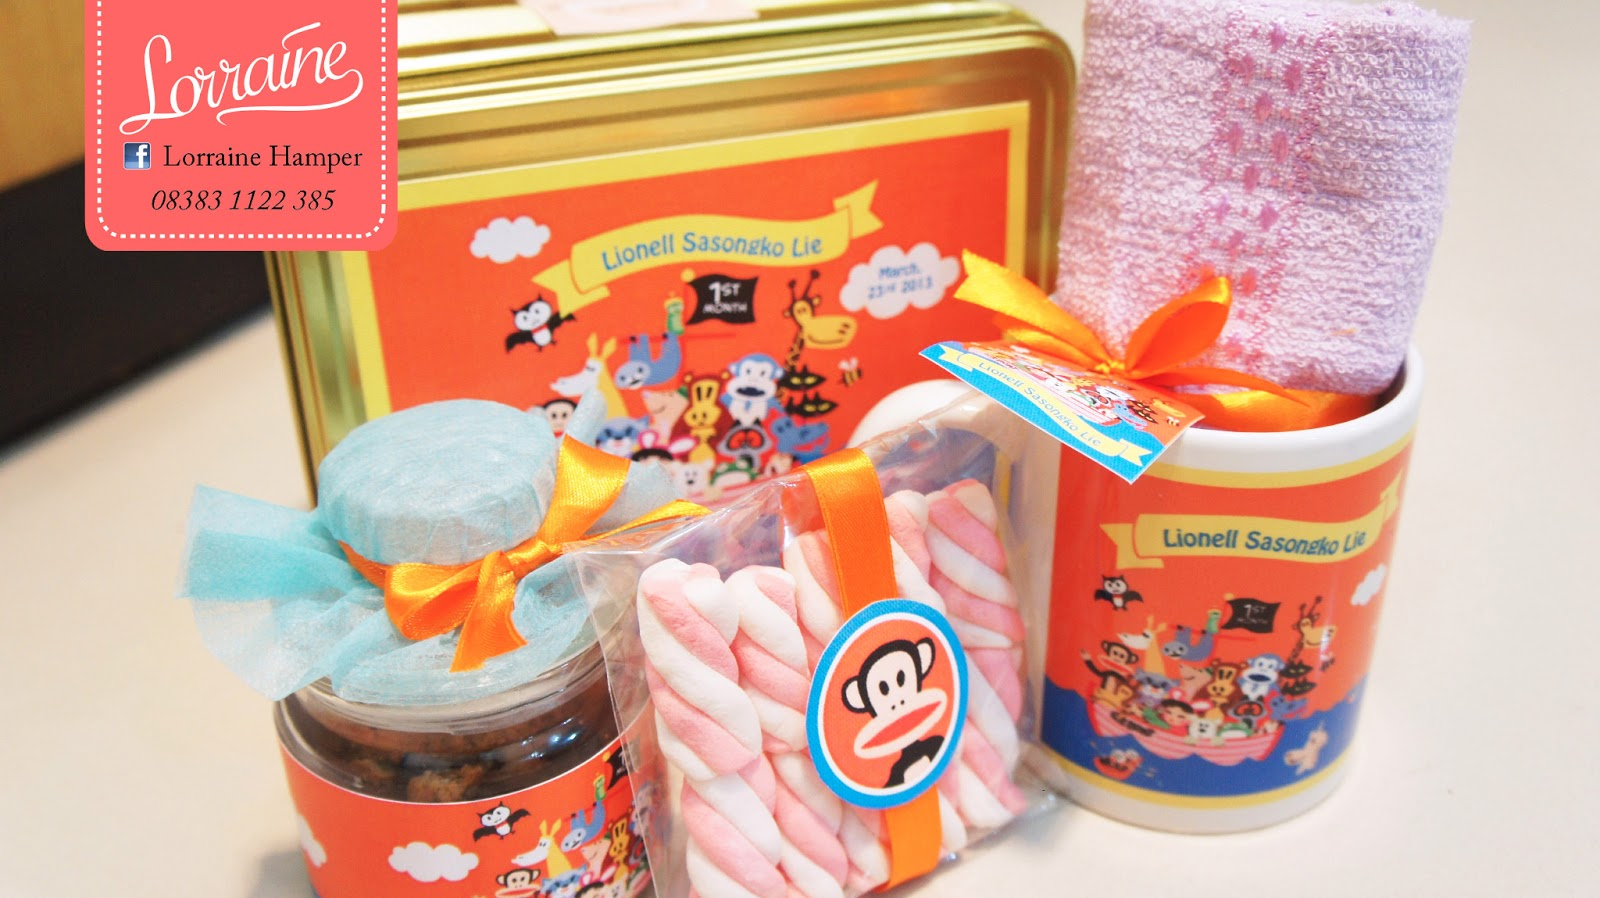 Lorraine Souvenir and Hamper: April 2013